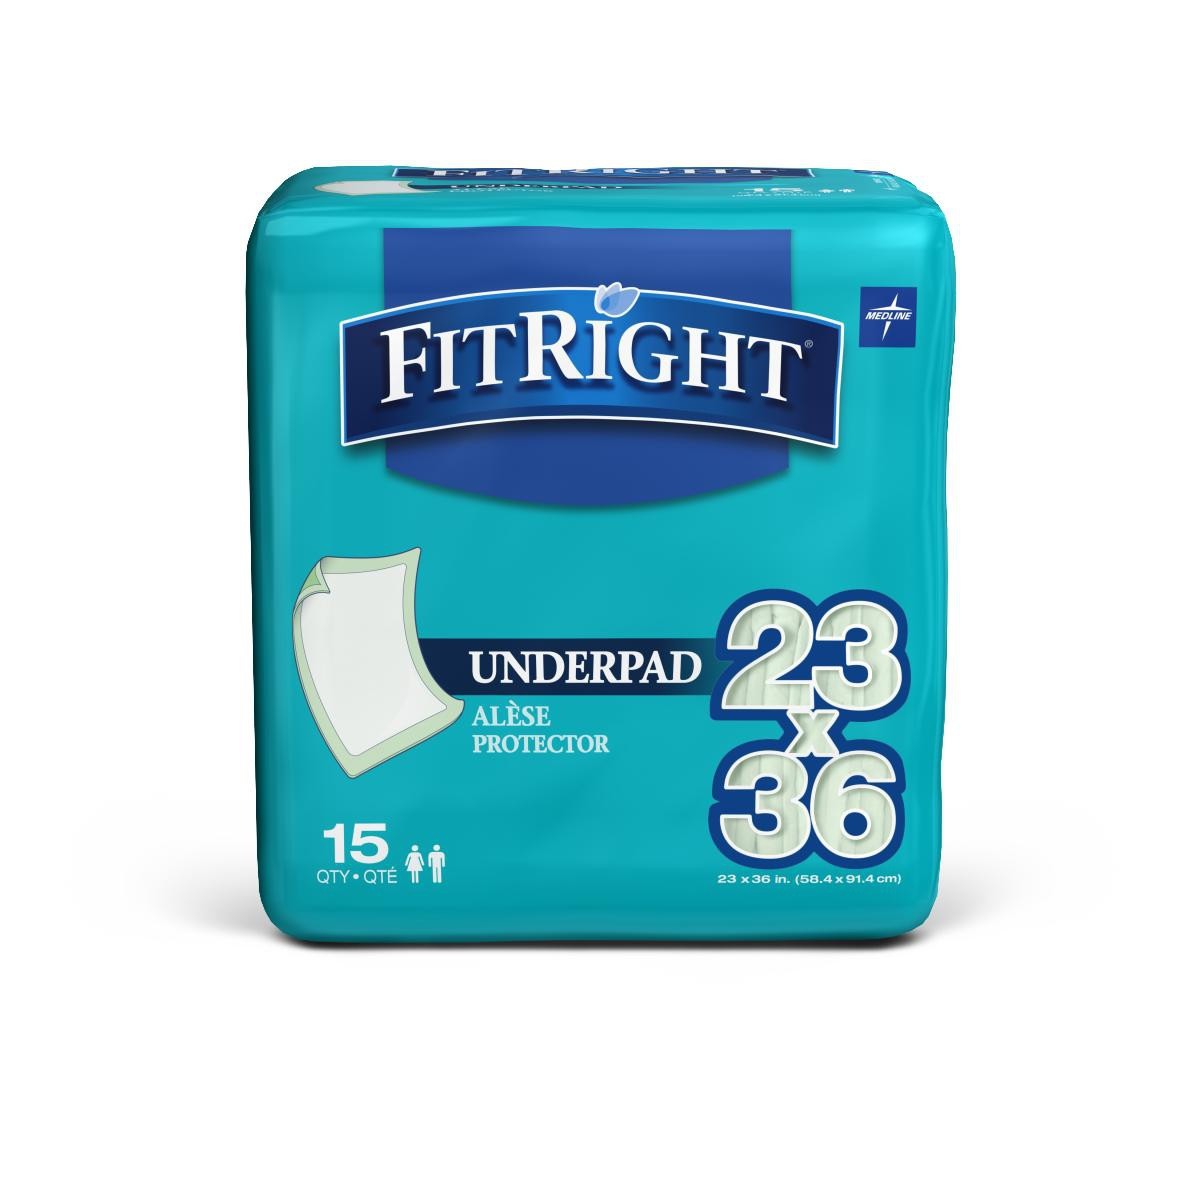 medline fitright underpads be1